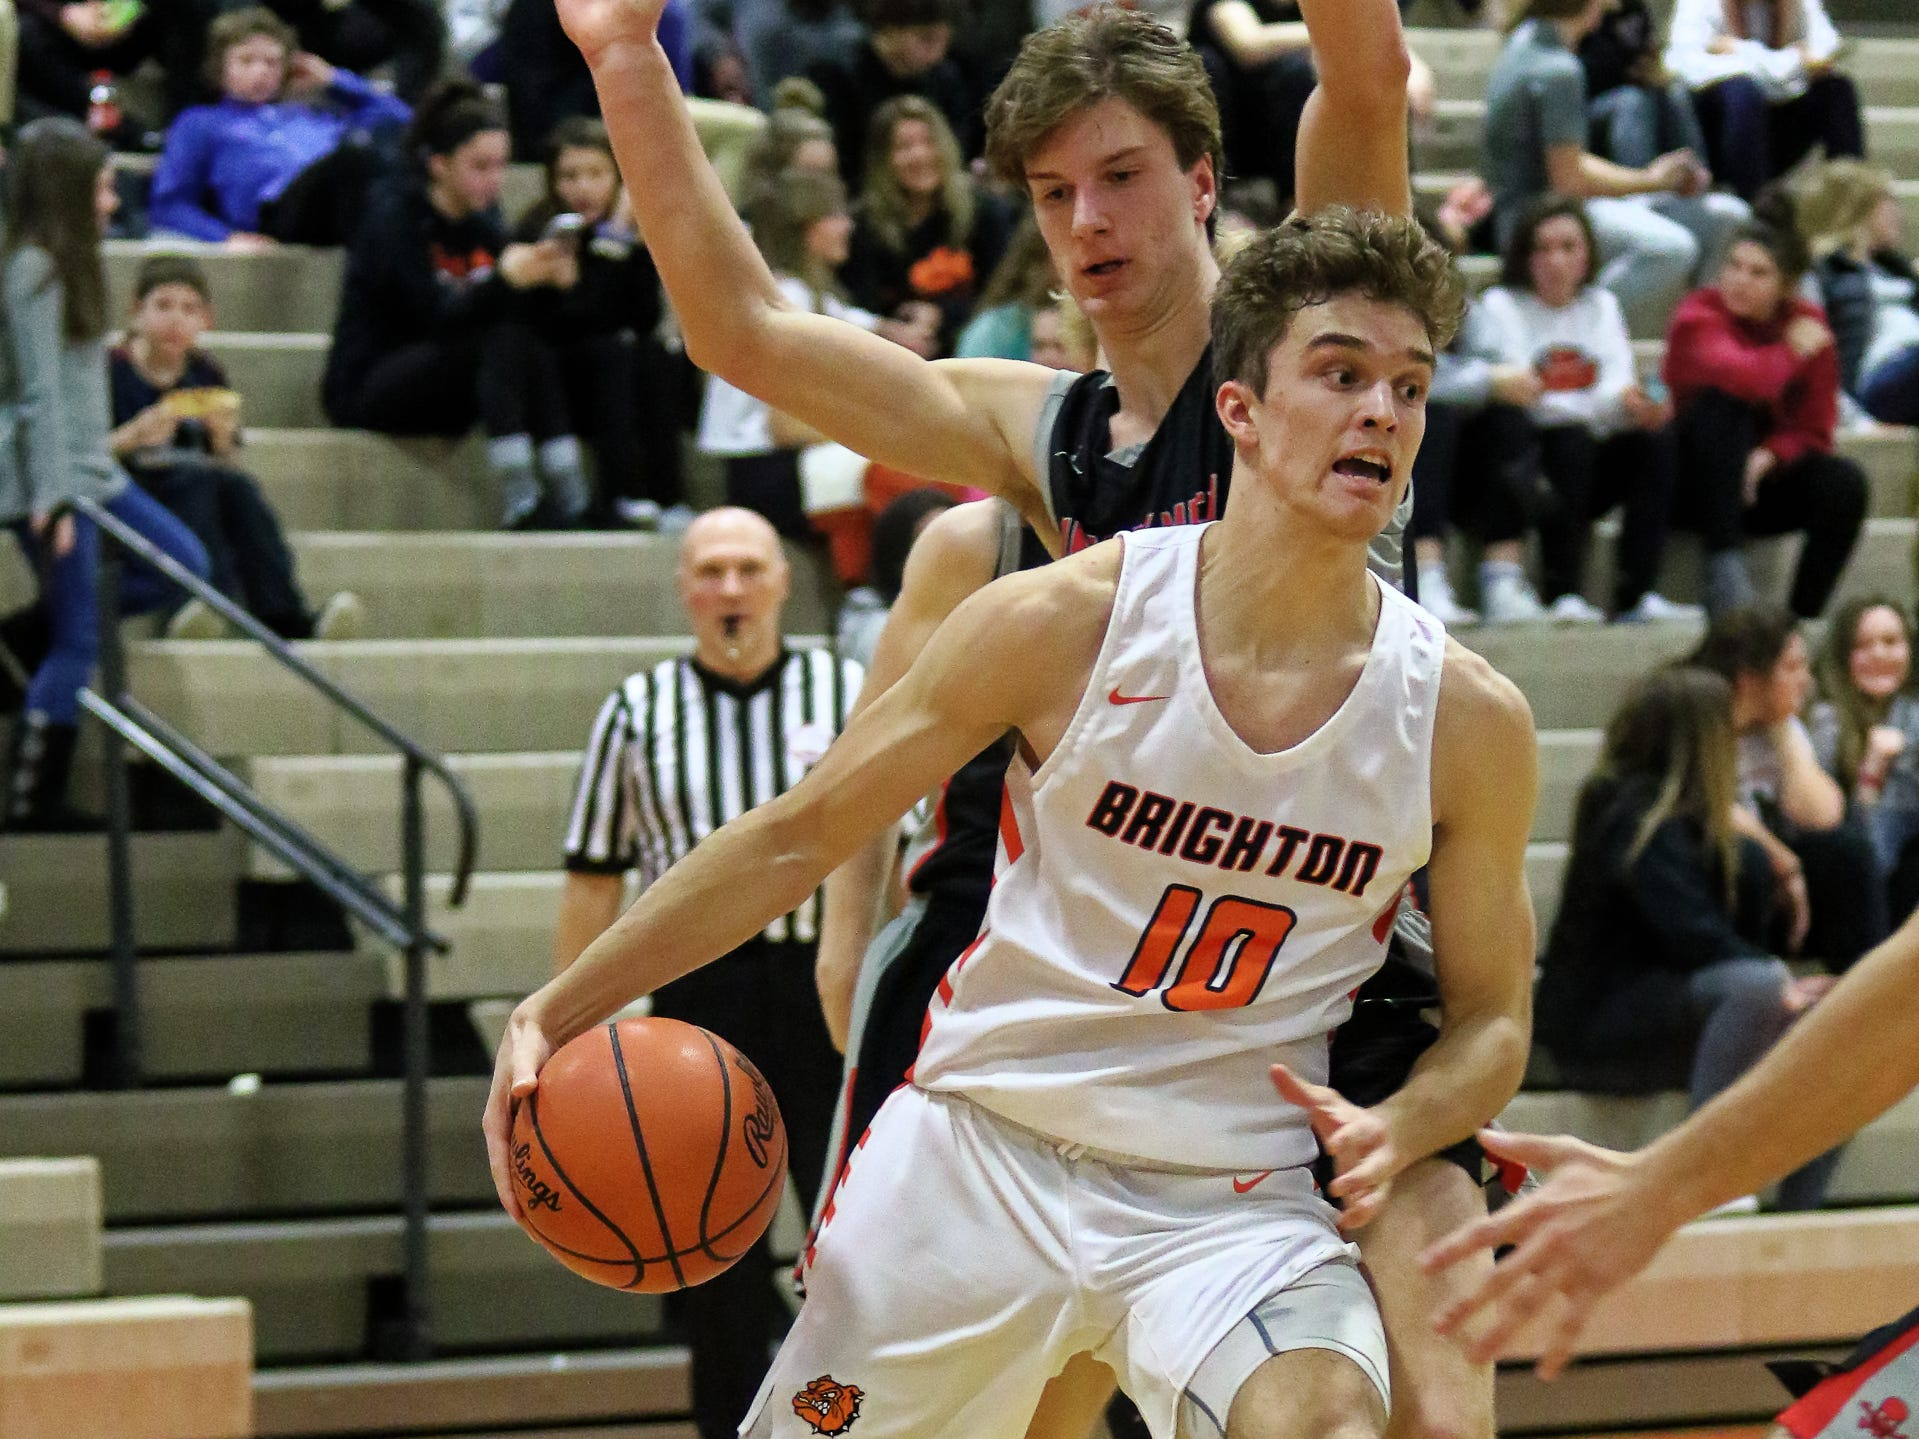 Brighton's Keenan Stolz drives the baseline in a 60-33 victory over Pinckney on Thursday, Jan. 3, 2019.